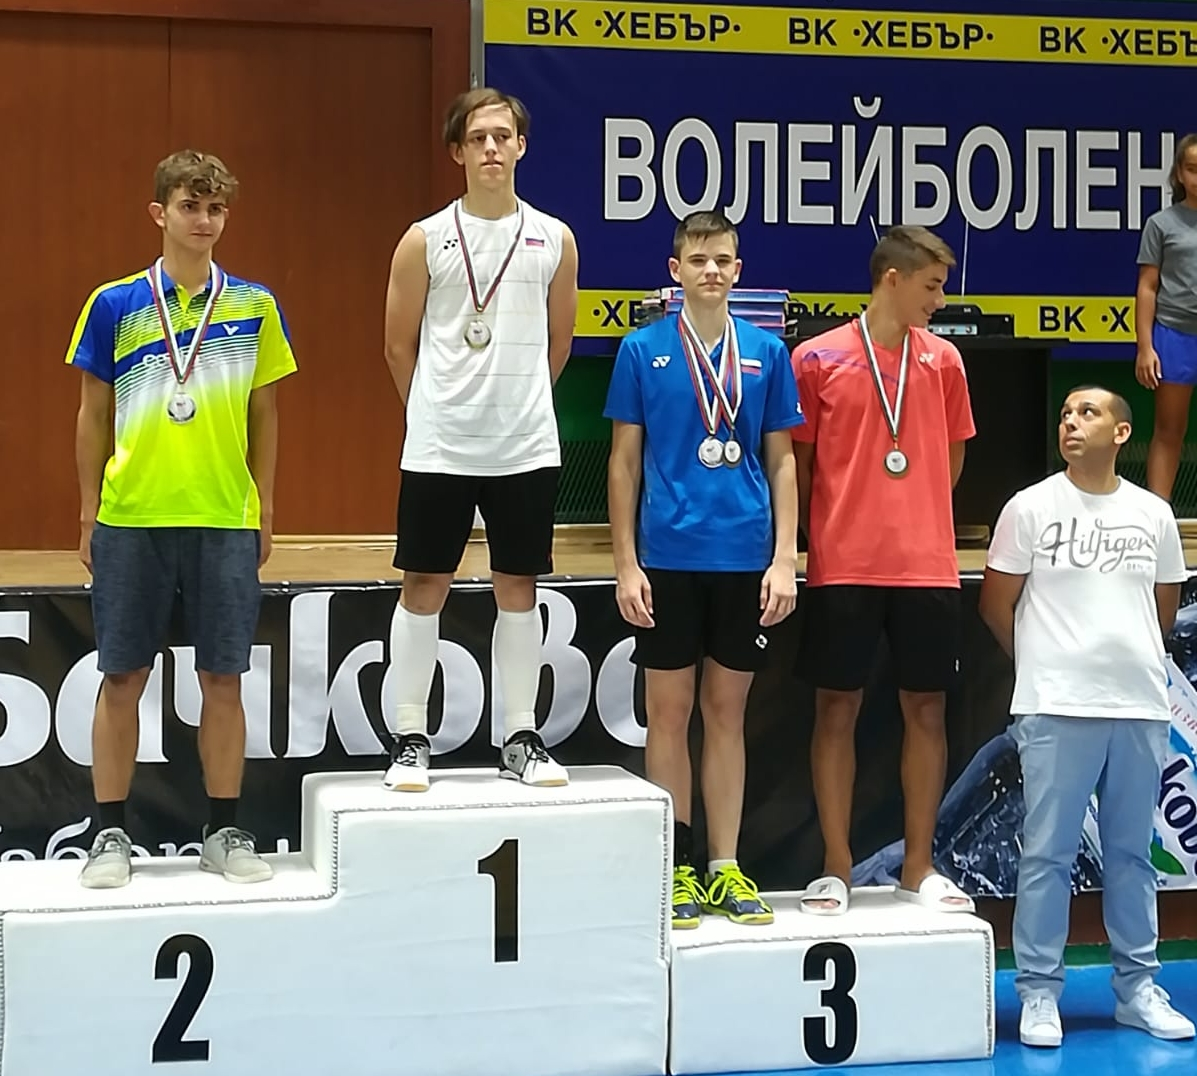 Platz 2 beim U19-Turnier in Bulgarien